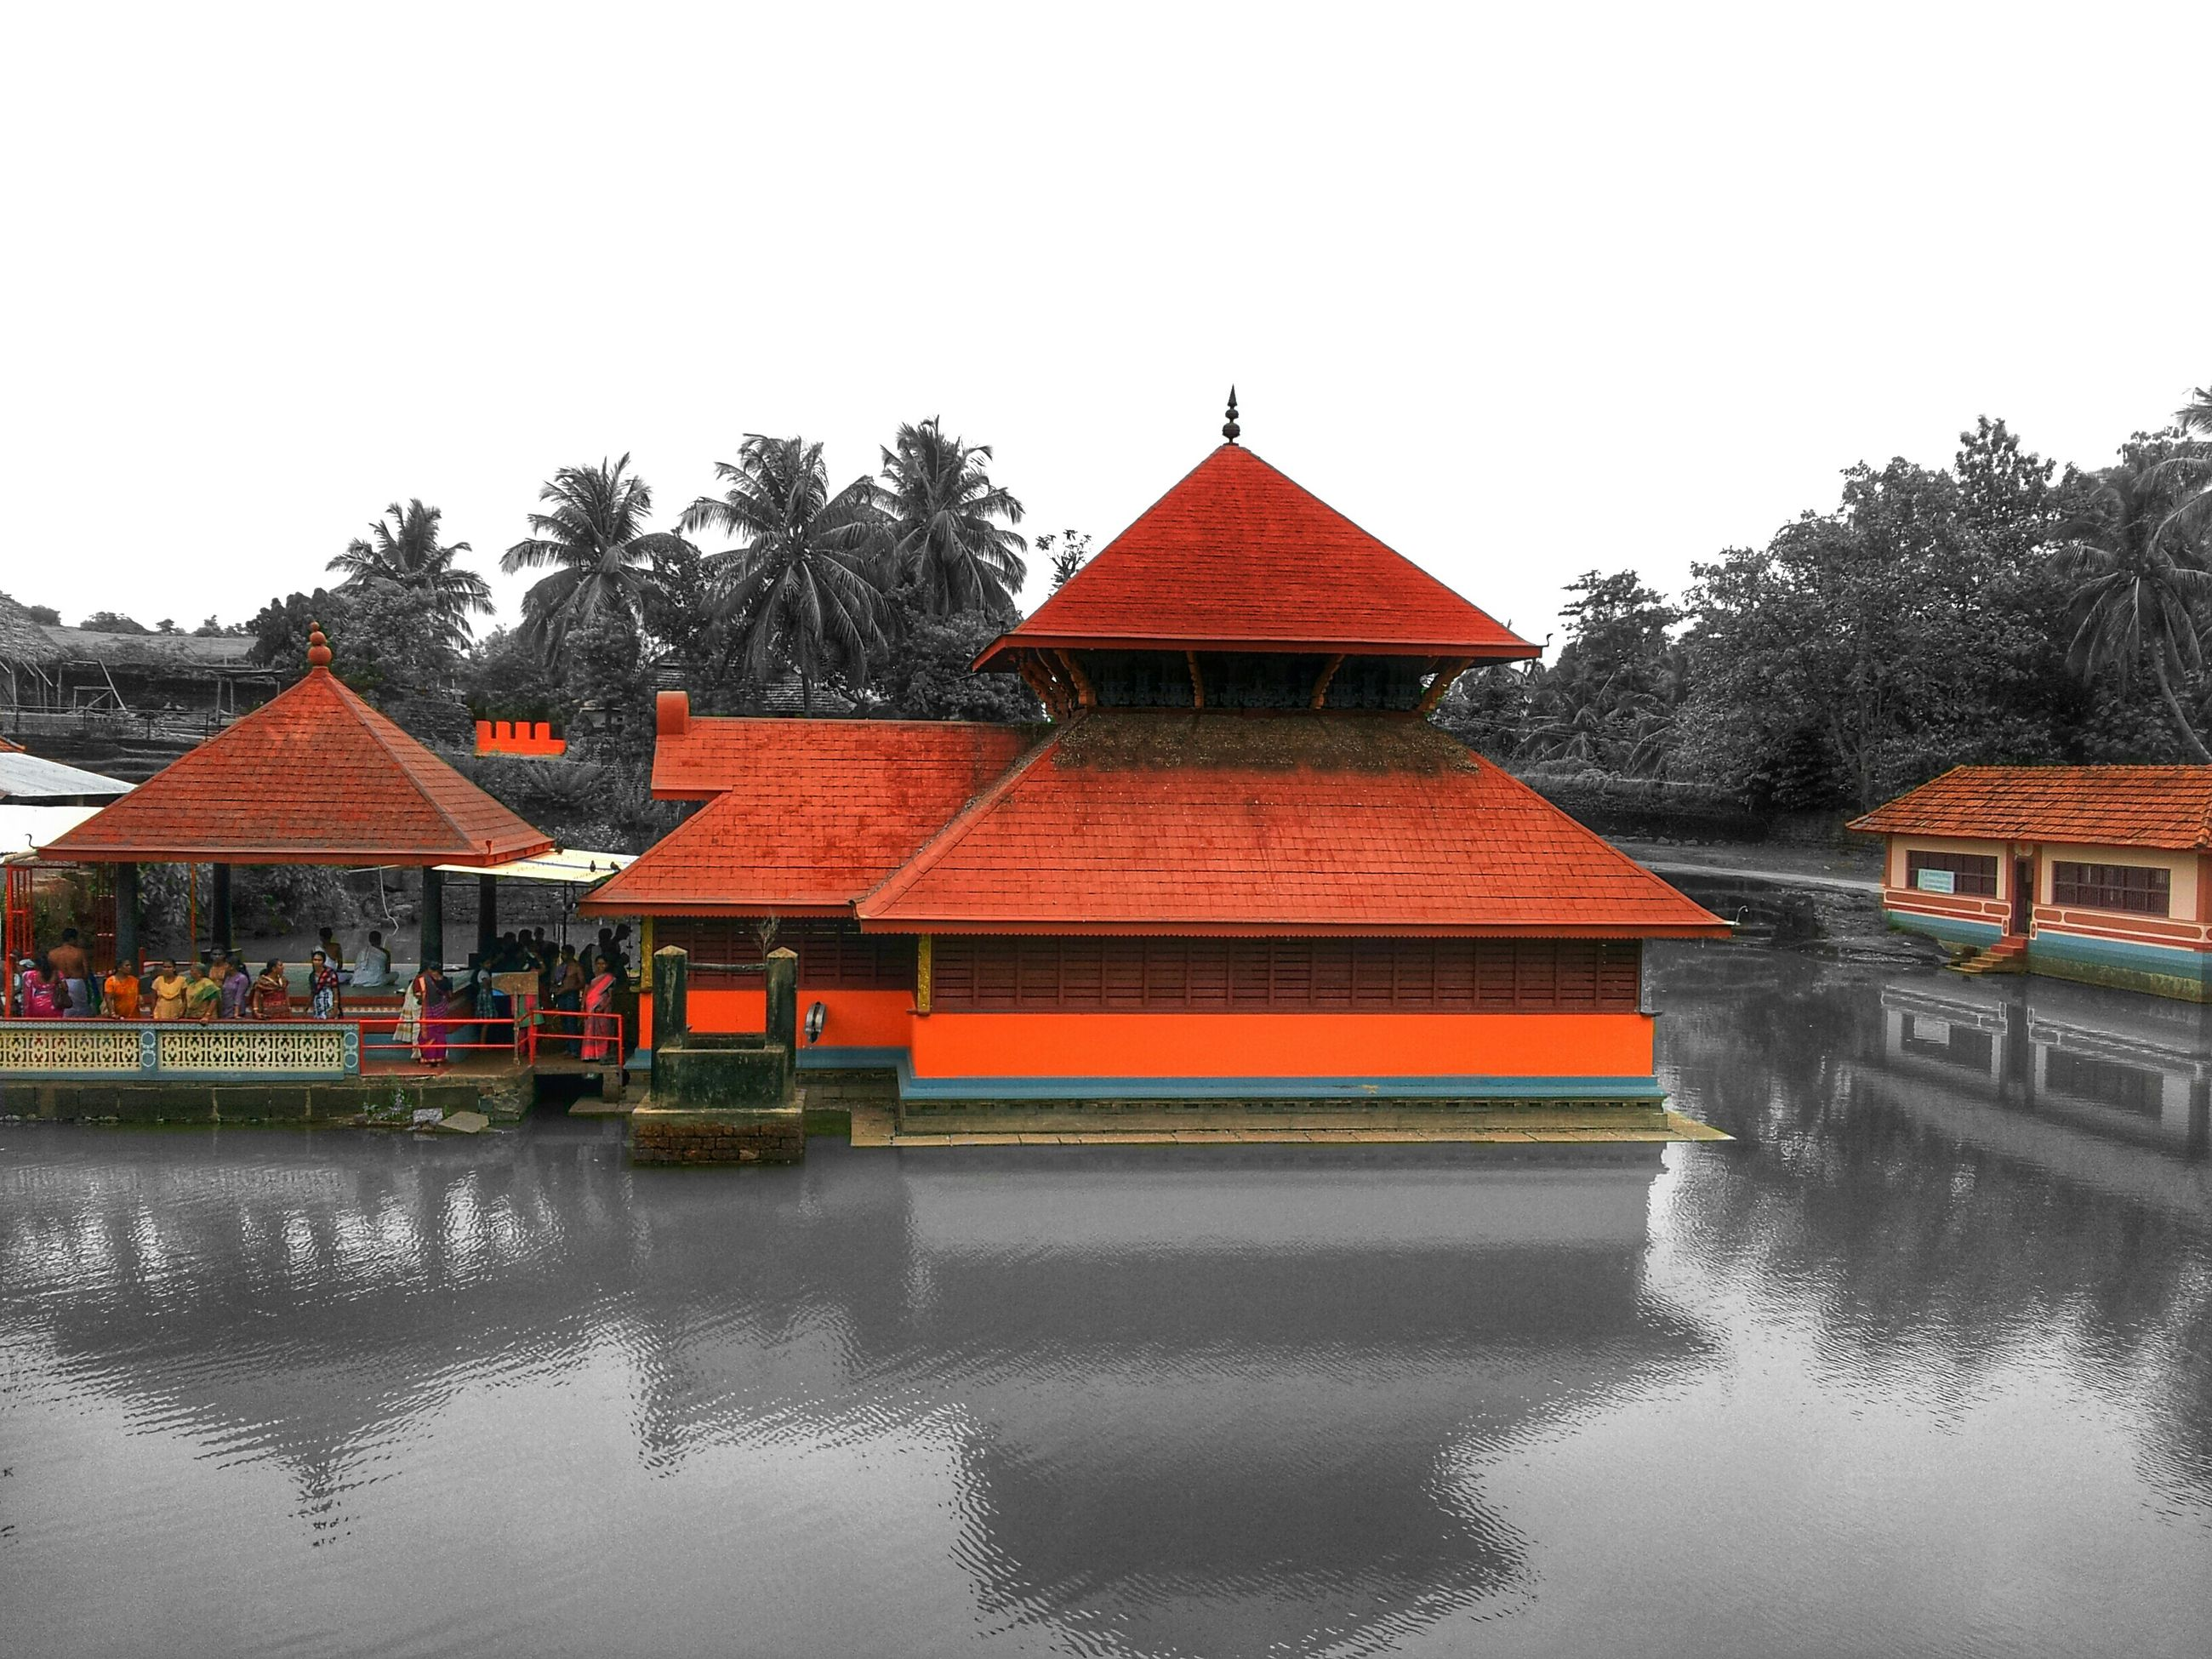 architecture, built structure, water, building exterior, waterfront, clear sky, tree, reflection, house, river, lake, canal, day, outdoors, sky, roof, gazebo, residential structure, tranquility, bridge - man made structure